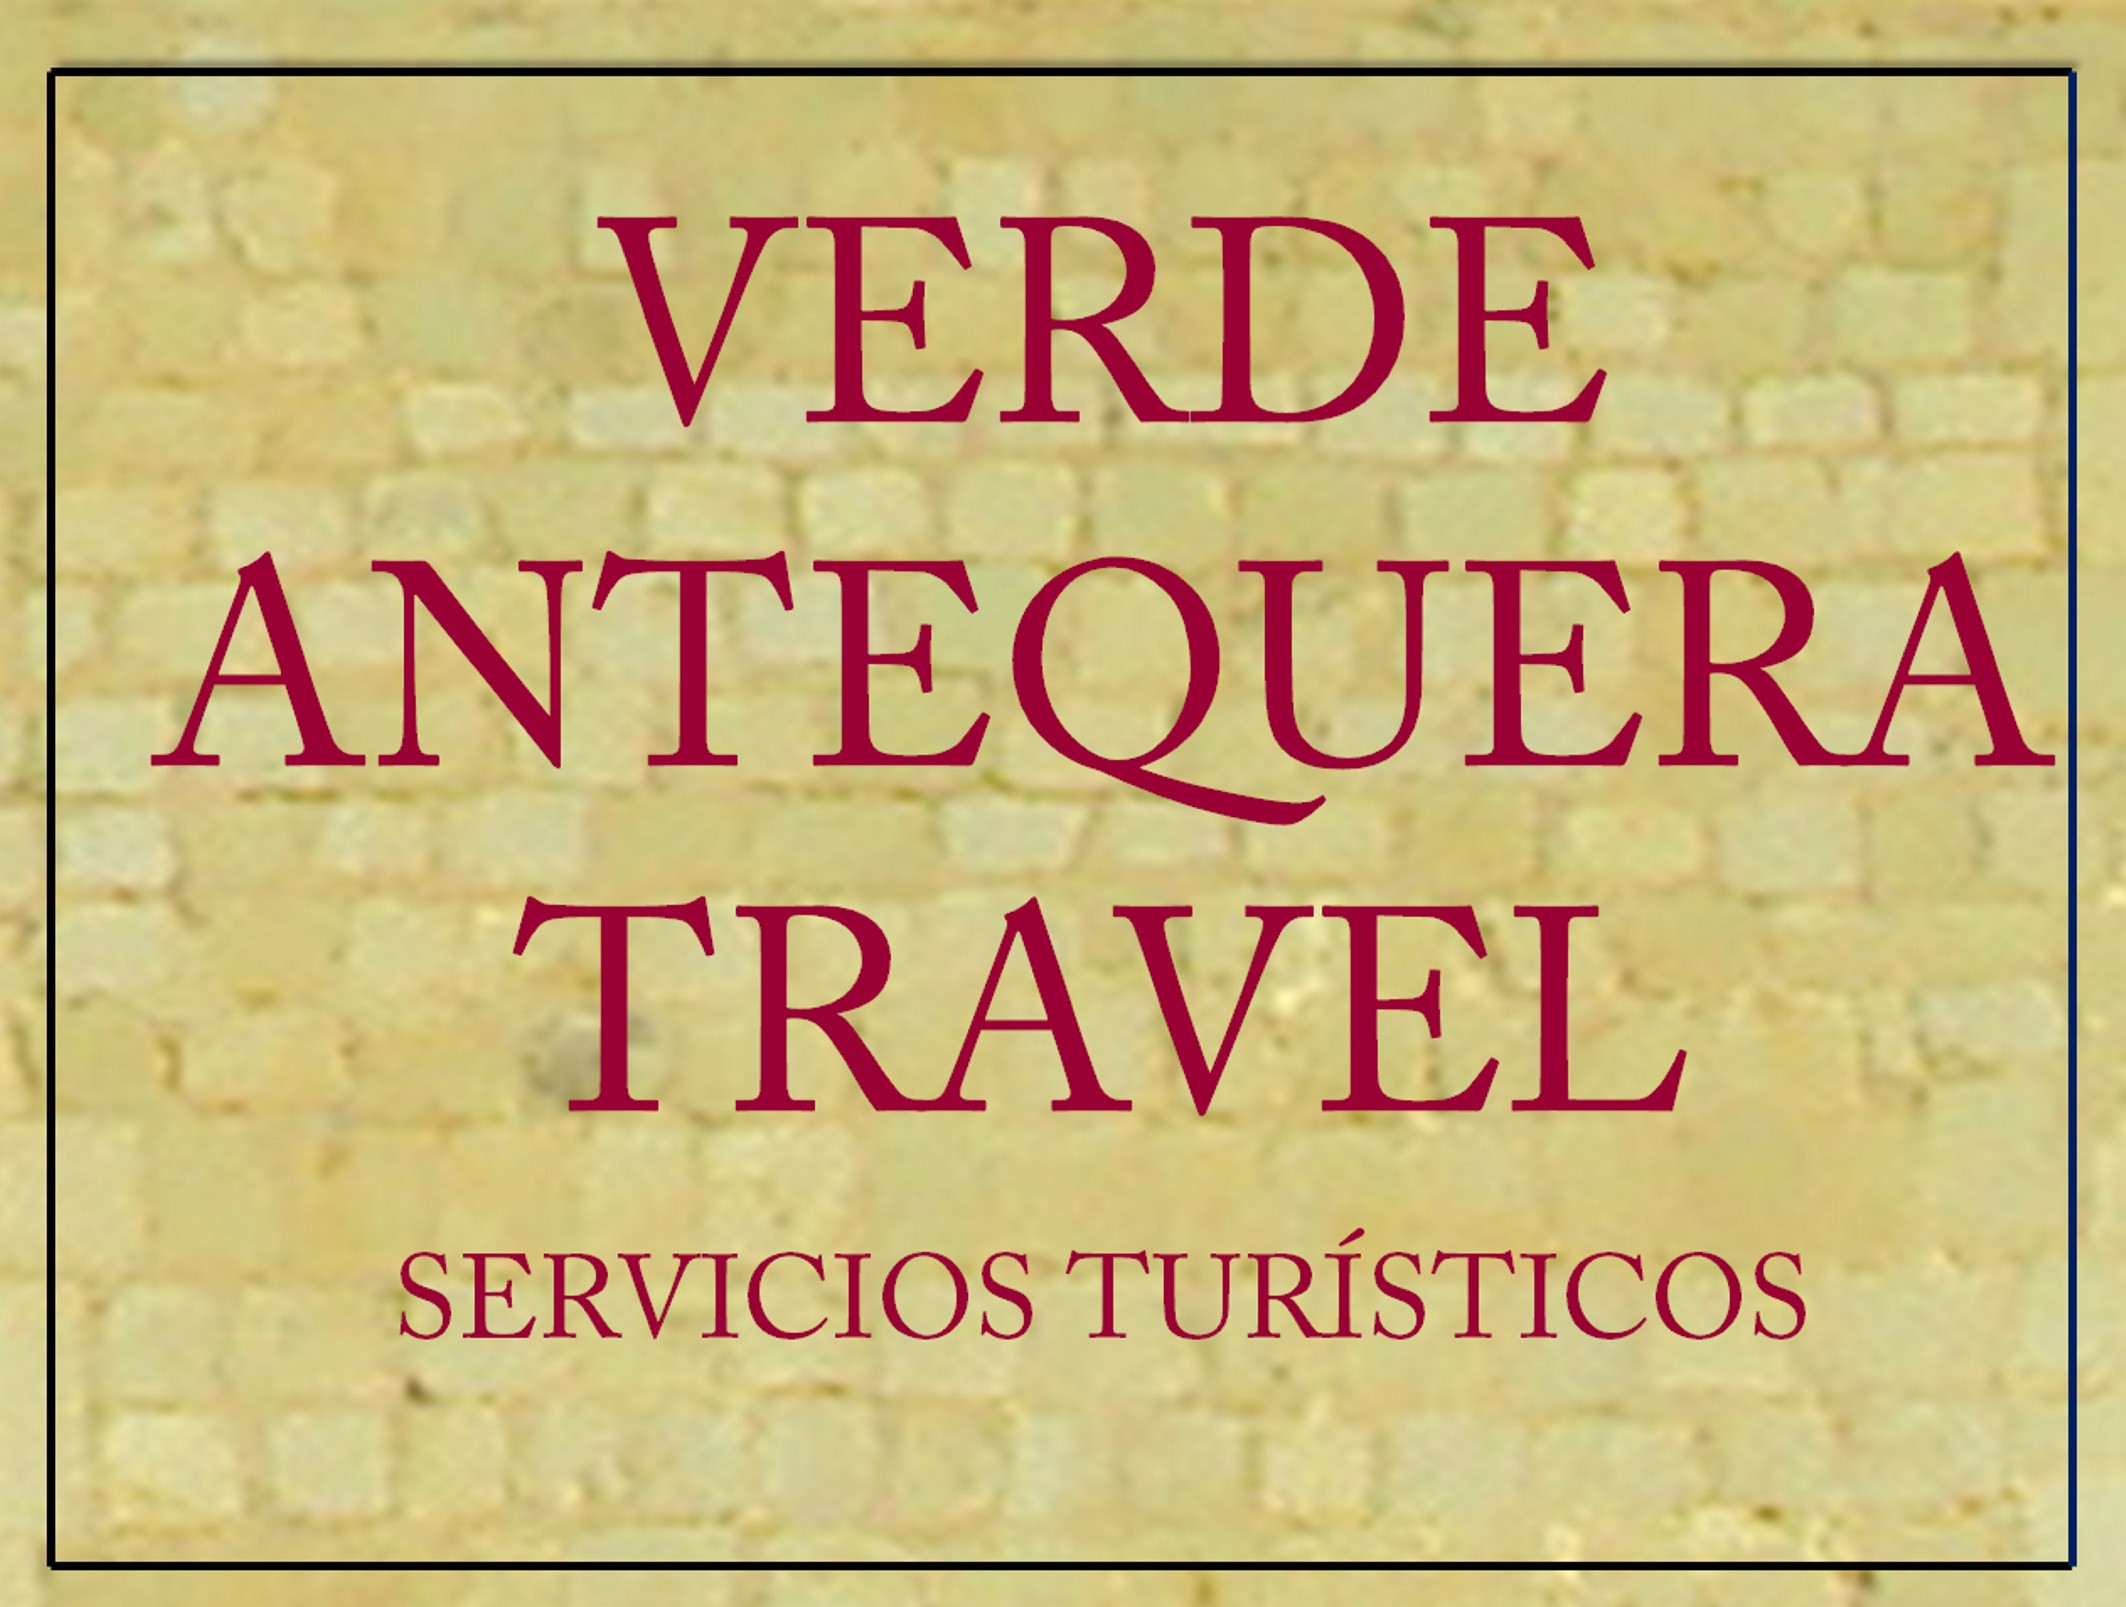 Verde antequera Travel